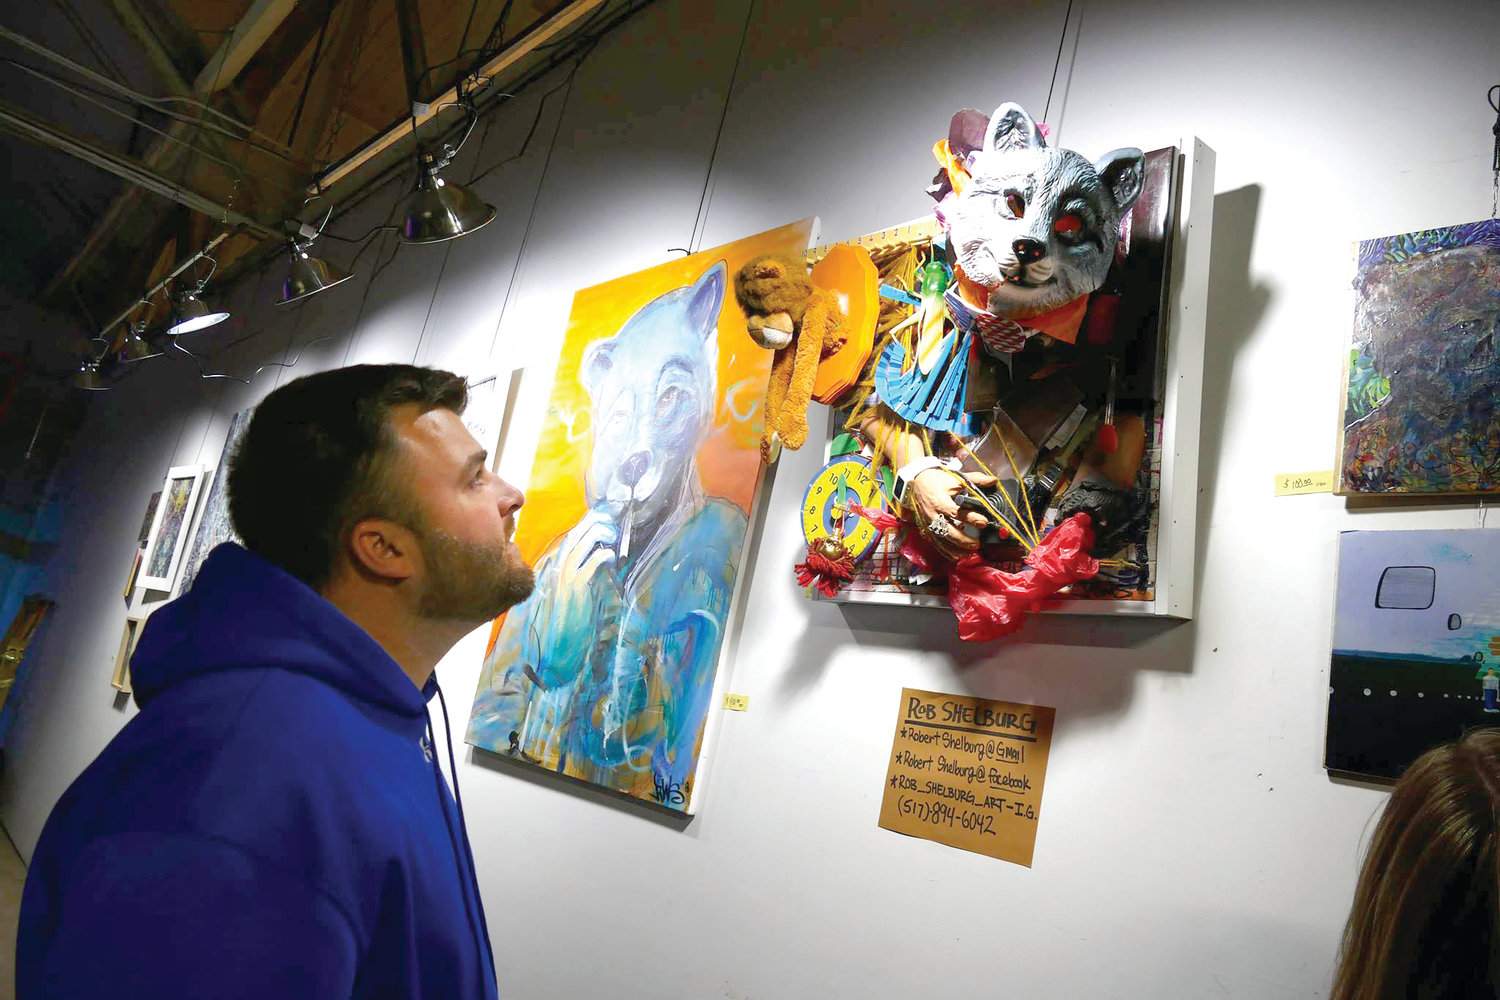 Attendees to the Art and Craft Beer Festival in REO Town can check out art while drinking craft beer and enjoying food from local eateries.